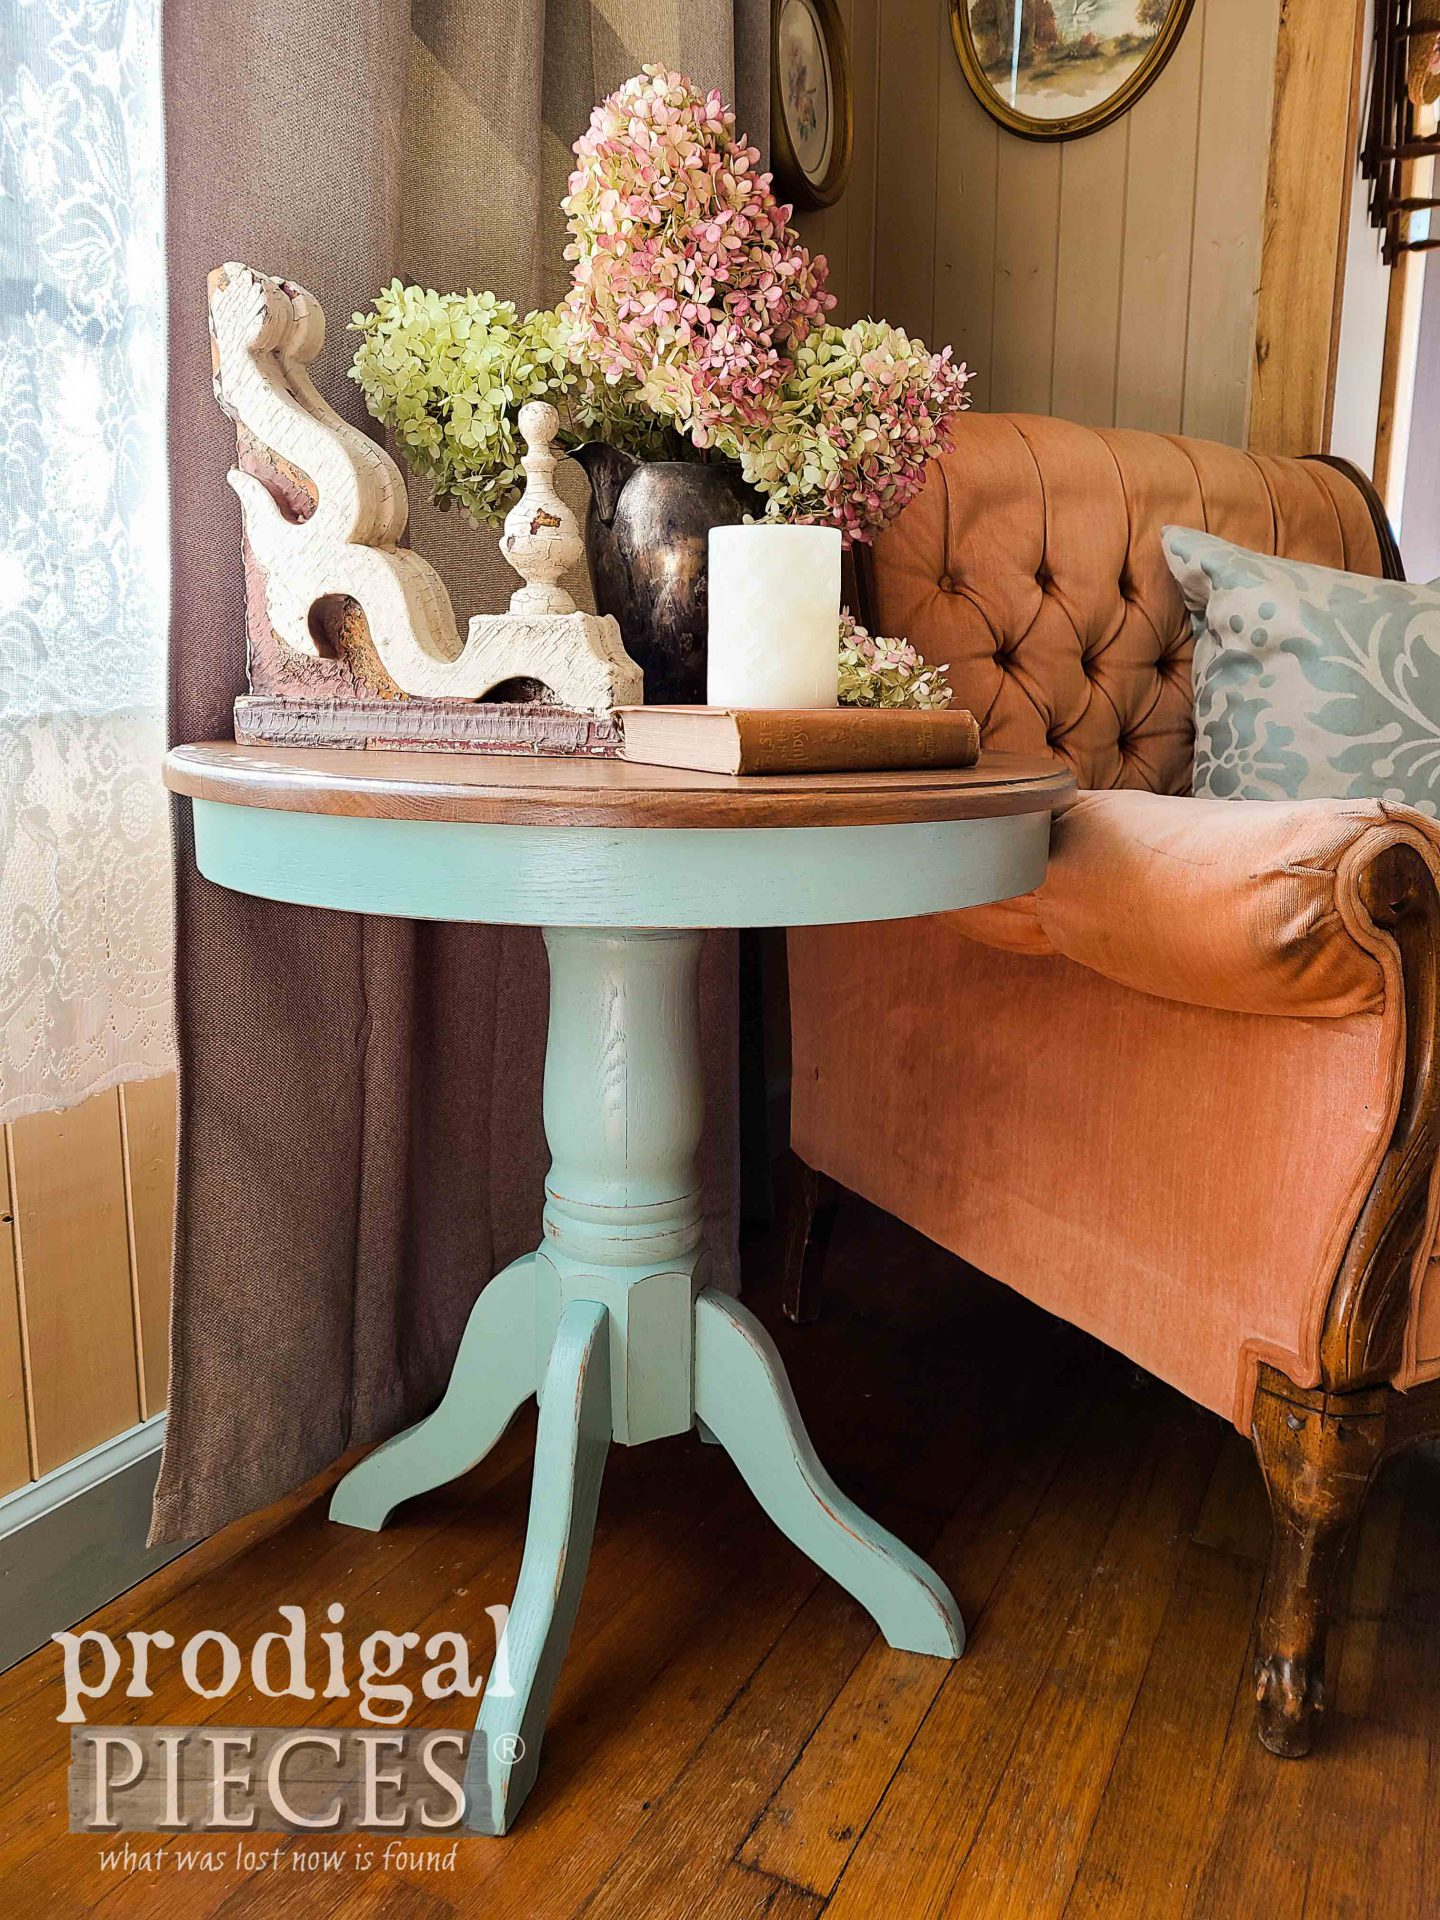 Blue Oak Pedestal Table Made New by Larissa of Prodigal Pieces | prodigalpieces.com #prodigalpieces #furniture #home #diy